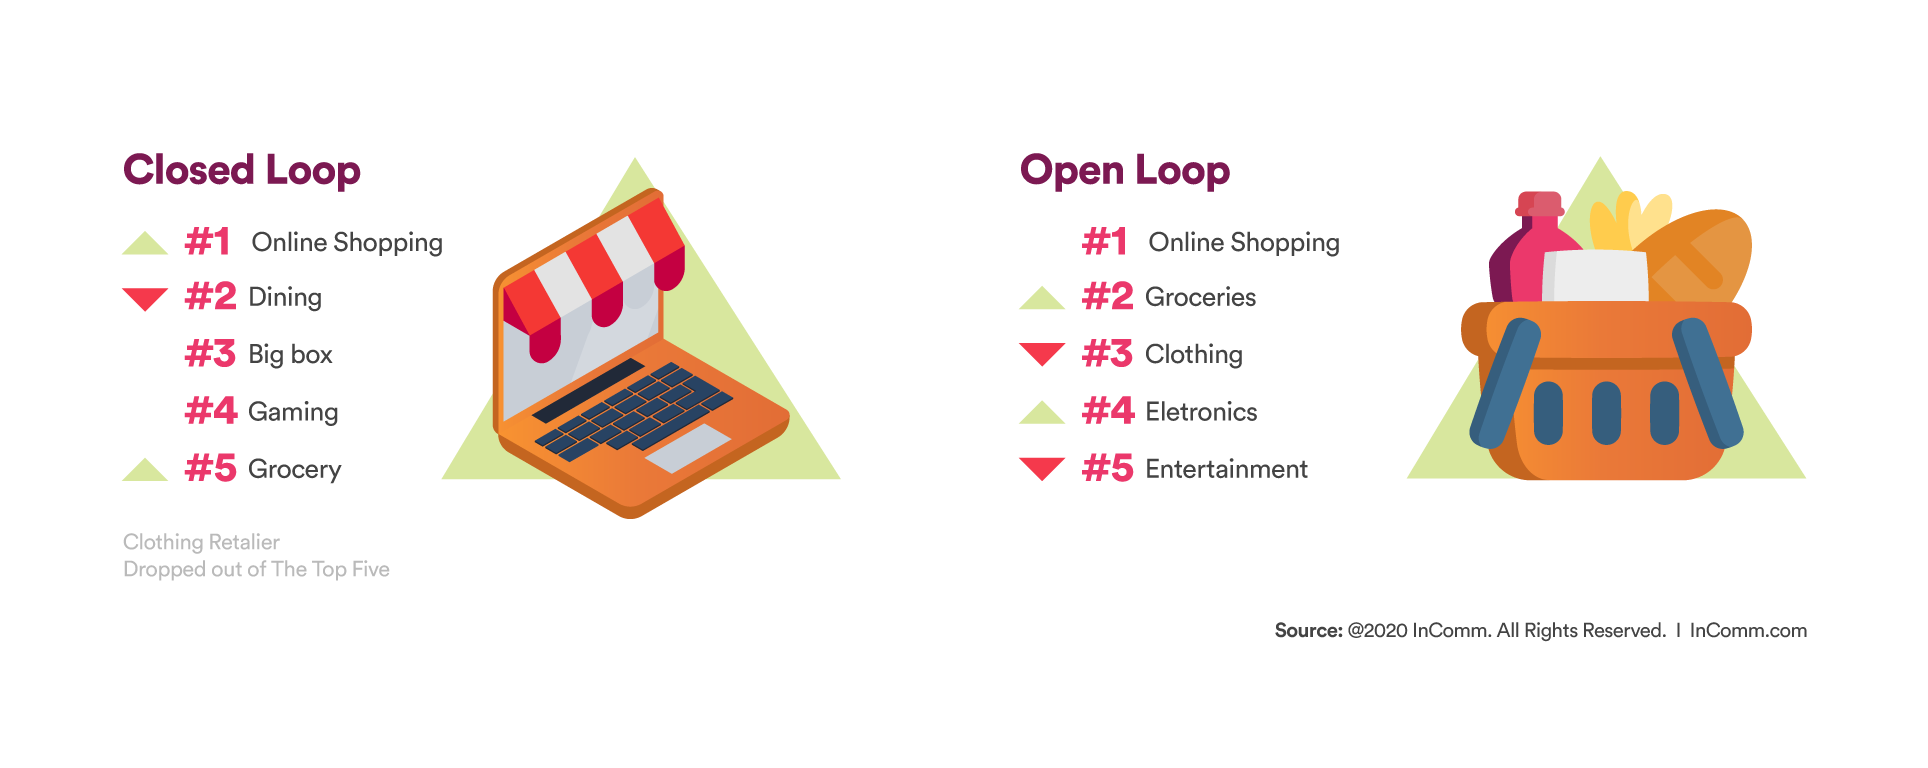 Closed loop and Open loop graphic